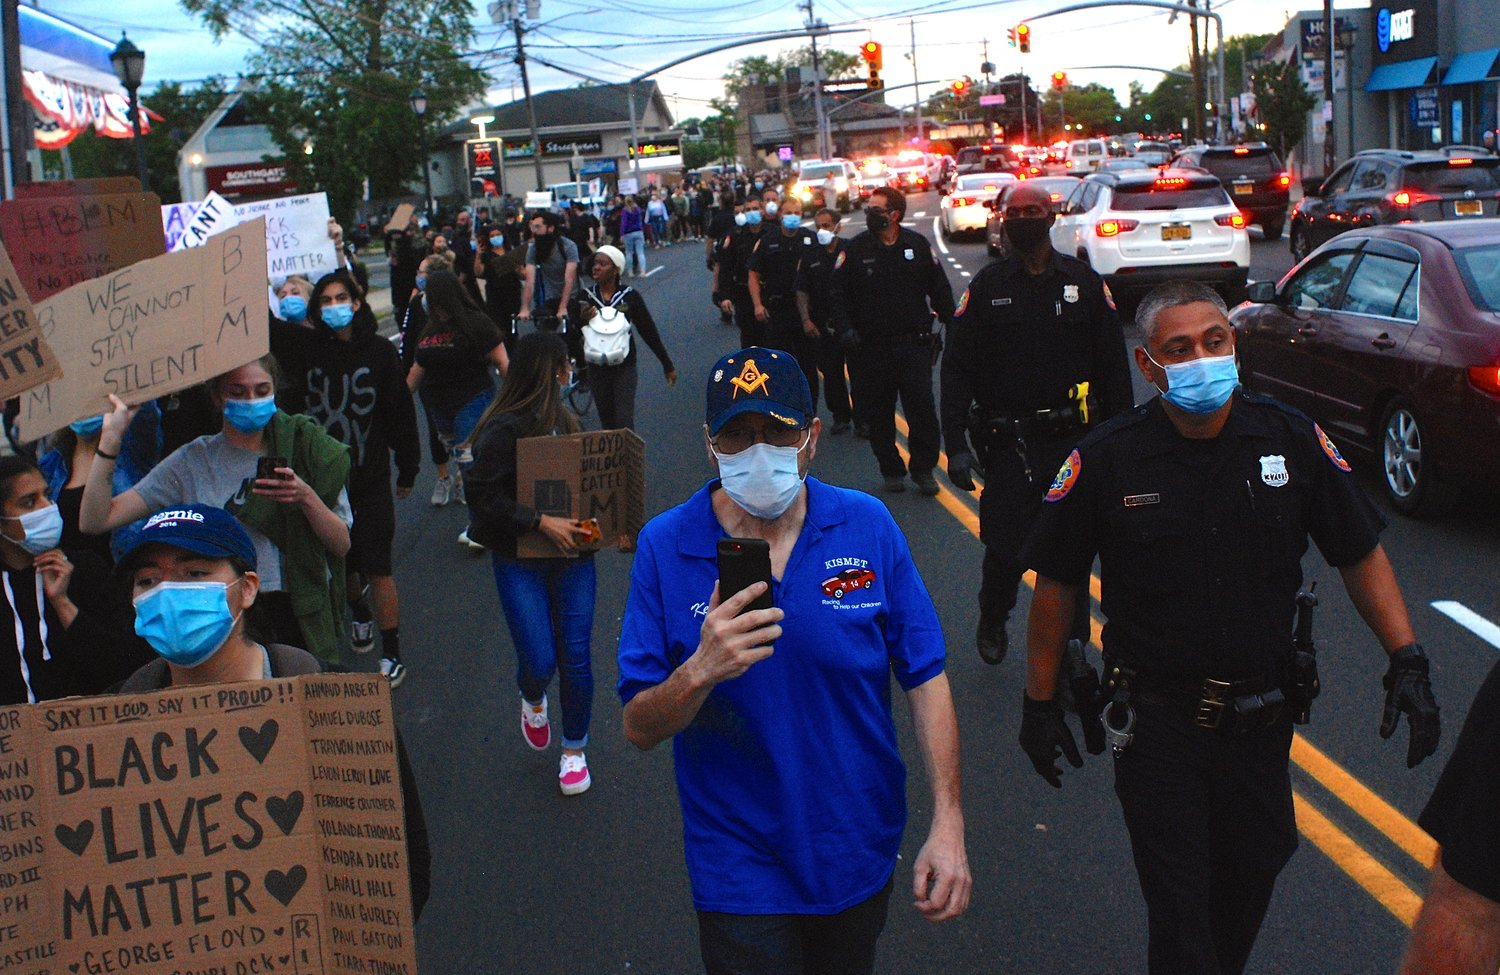 The protest shut down Merrick Road when demonstrators began to march.